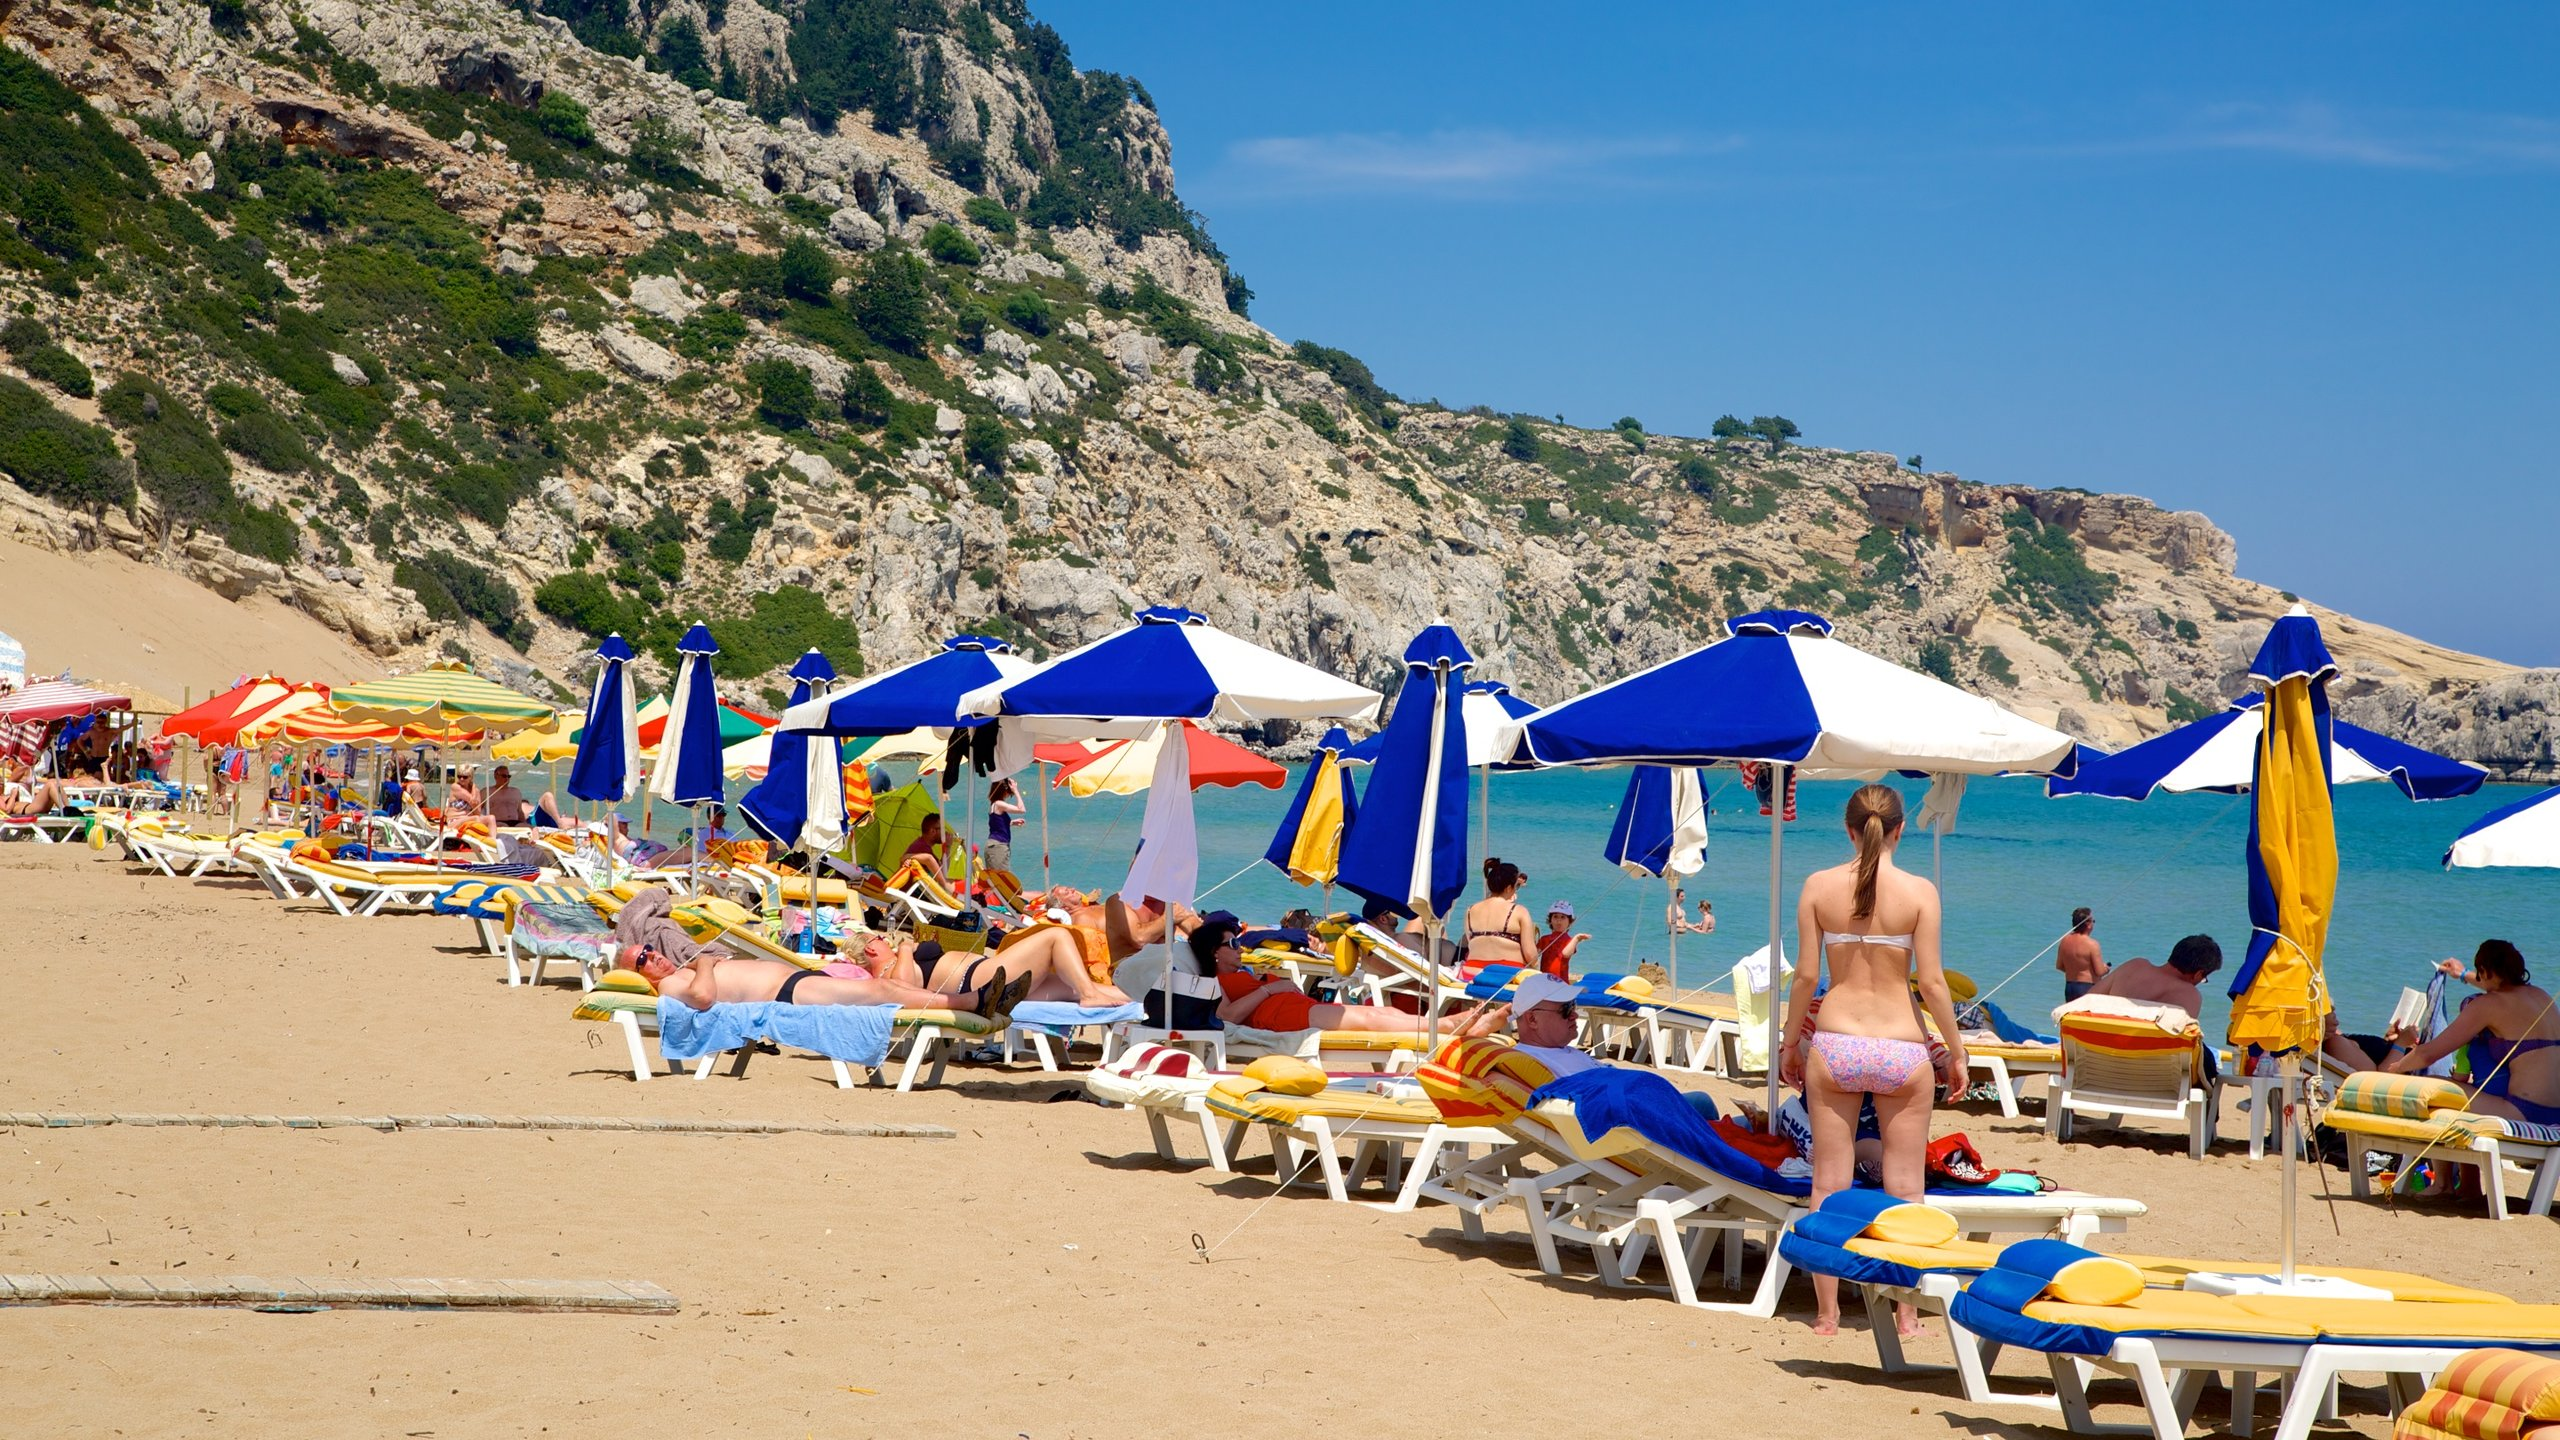 Sunbathe, swim, take part in watersports and walk to a hilltop monastery at this popular beach on the east coast of Rhodes.